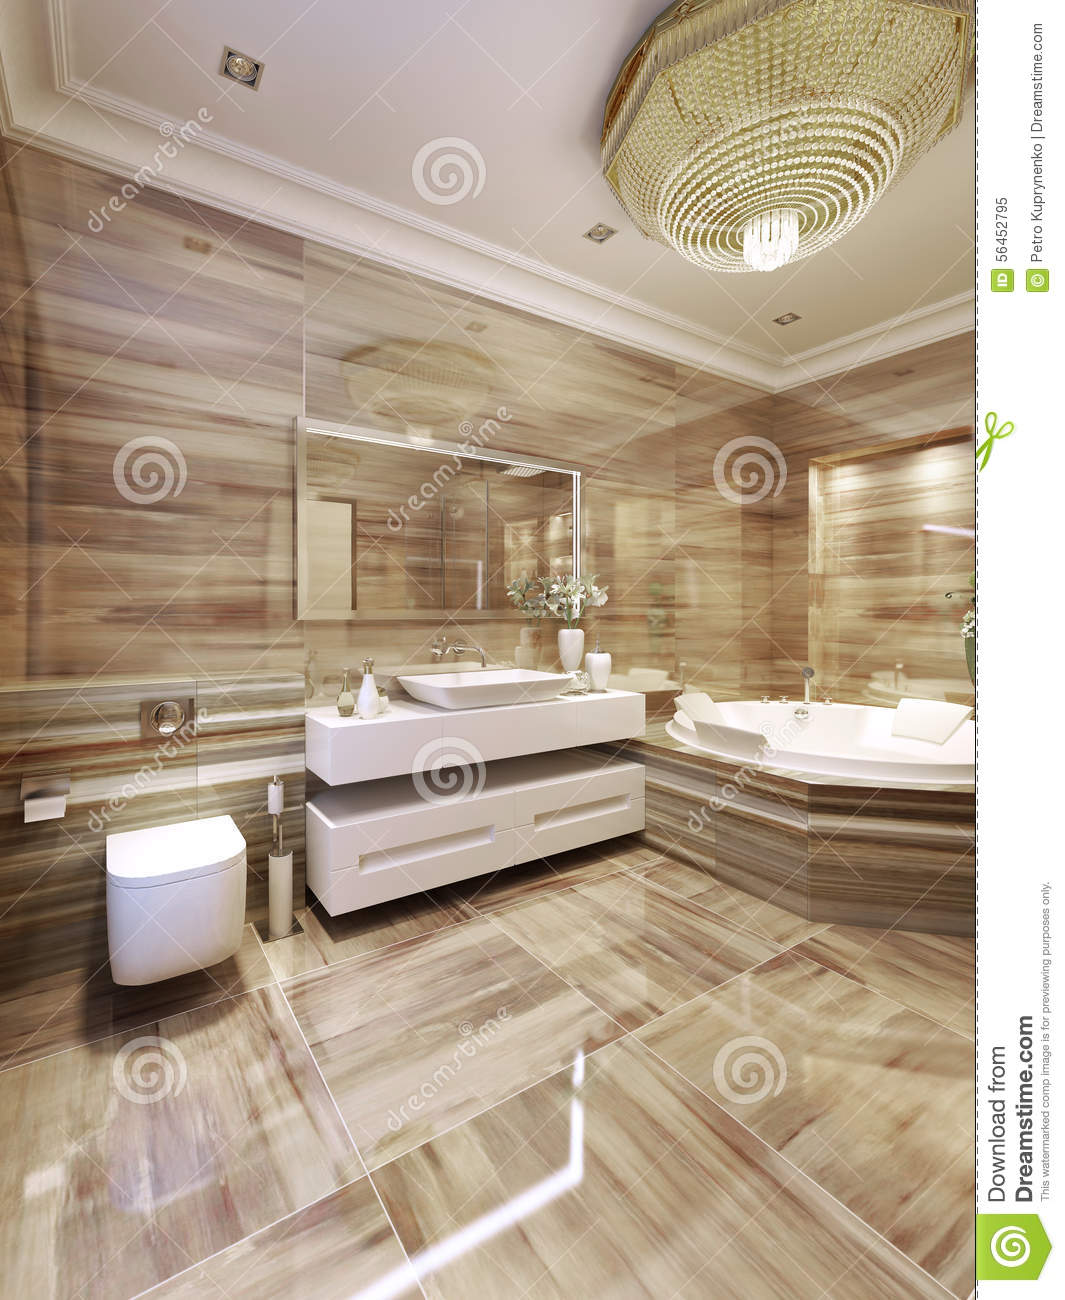 salle de bains moderne avec le jacuzzi image stock image 56452795. Black Bedroom Furniture Sets. Home Design Ideas